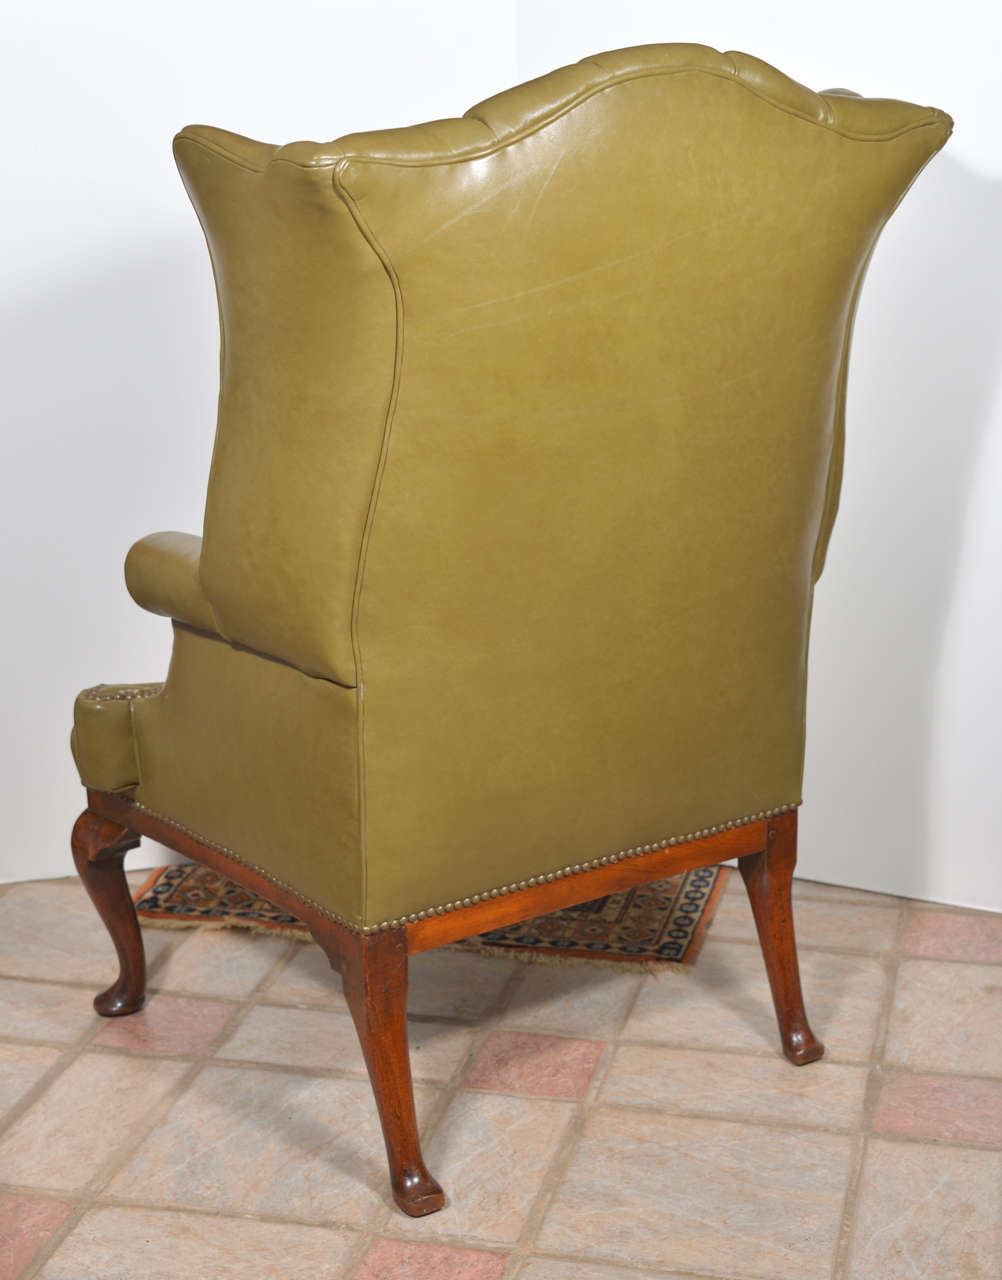 18th Century English Tufted Leather Queen Anne Wing Chair